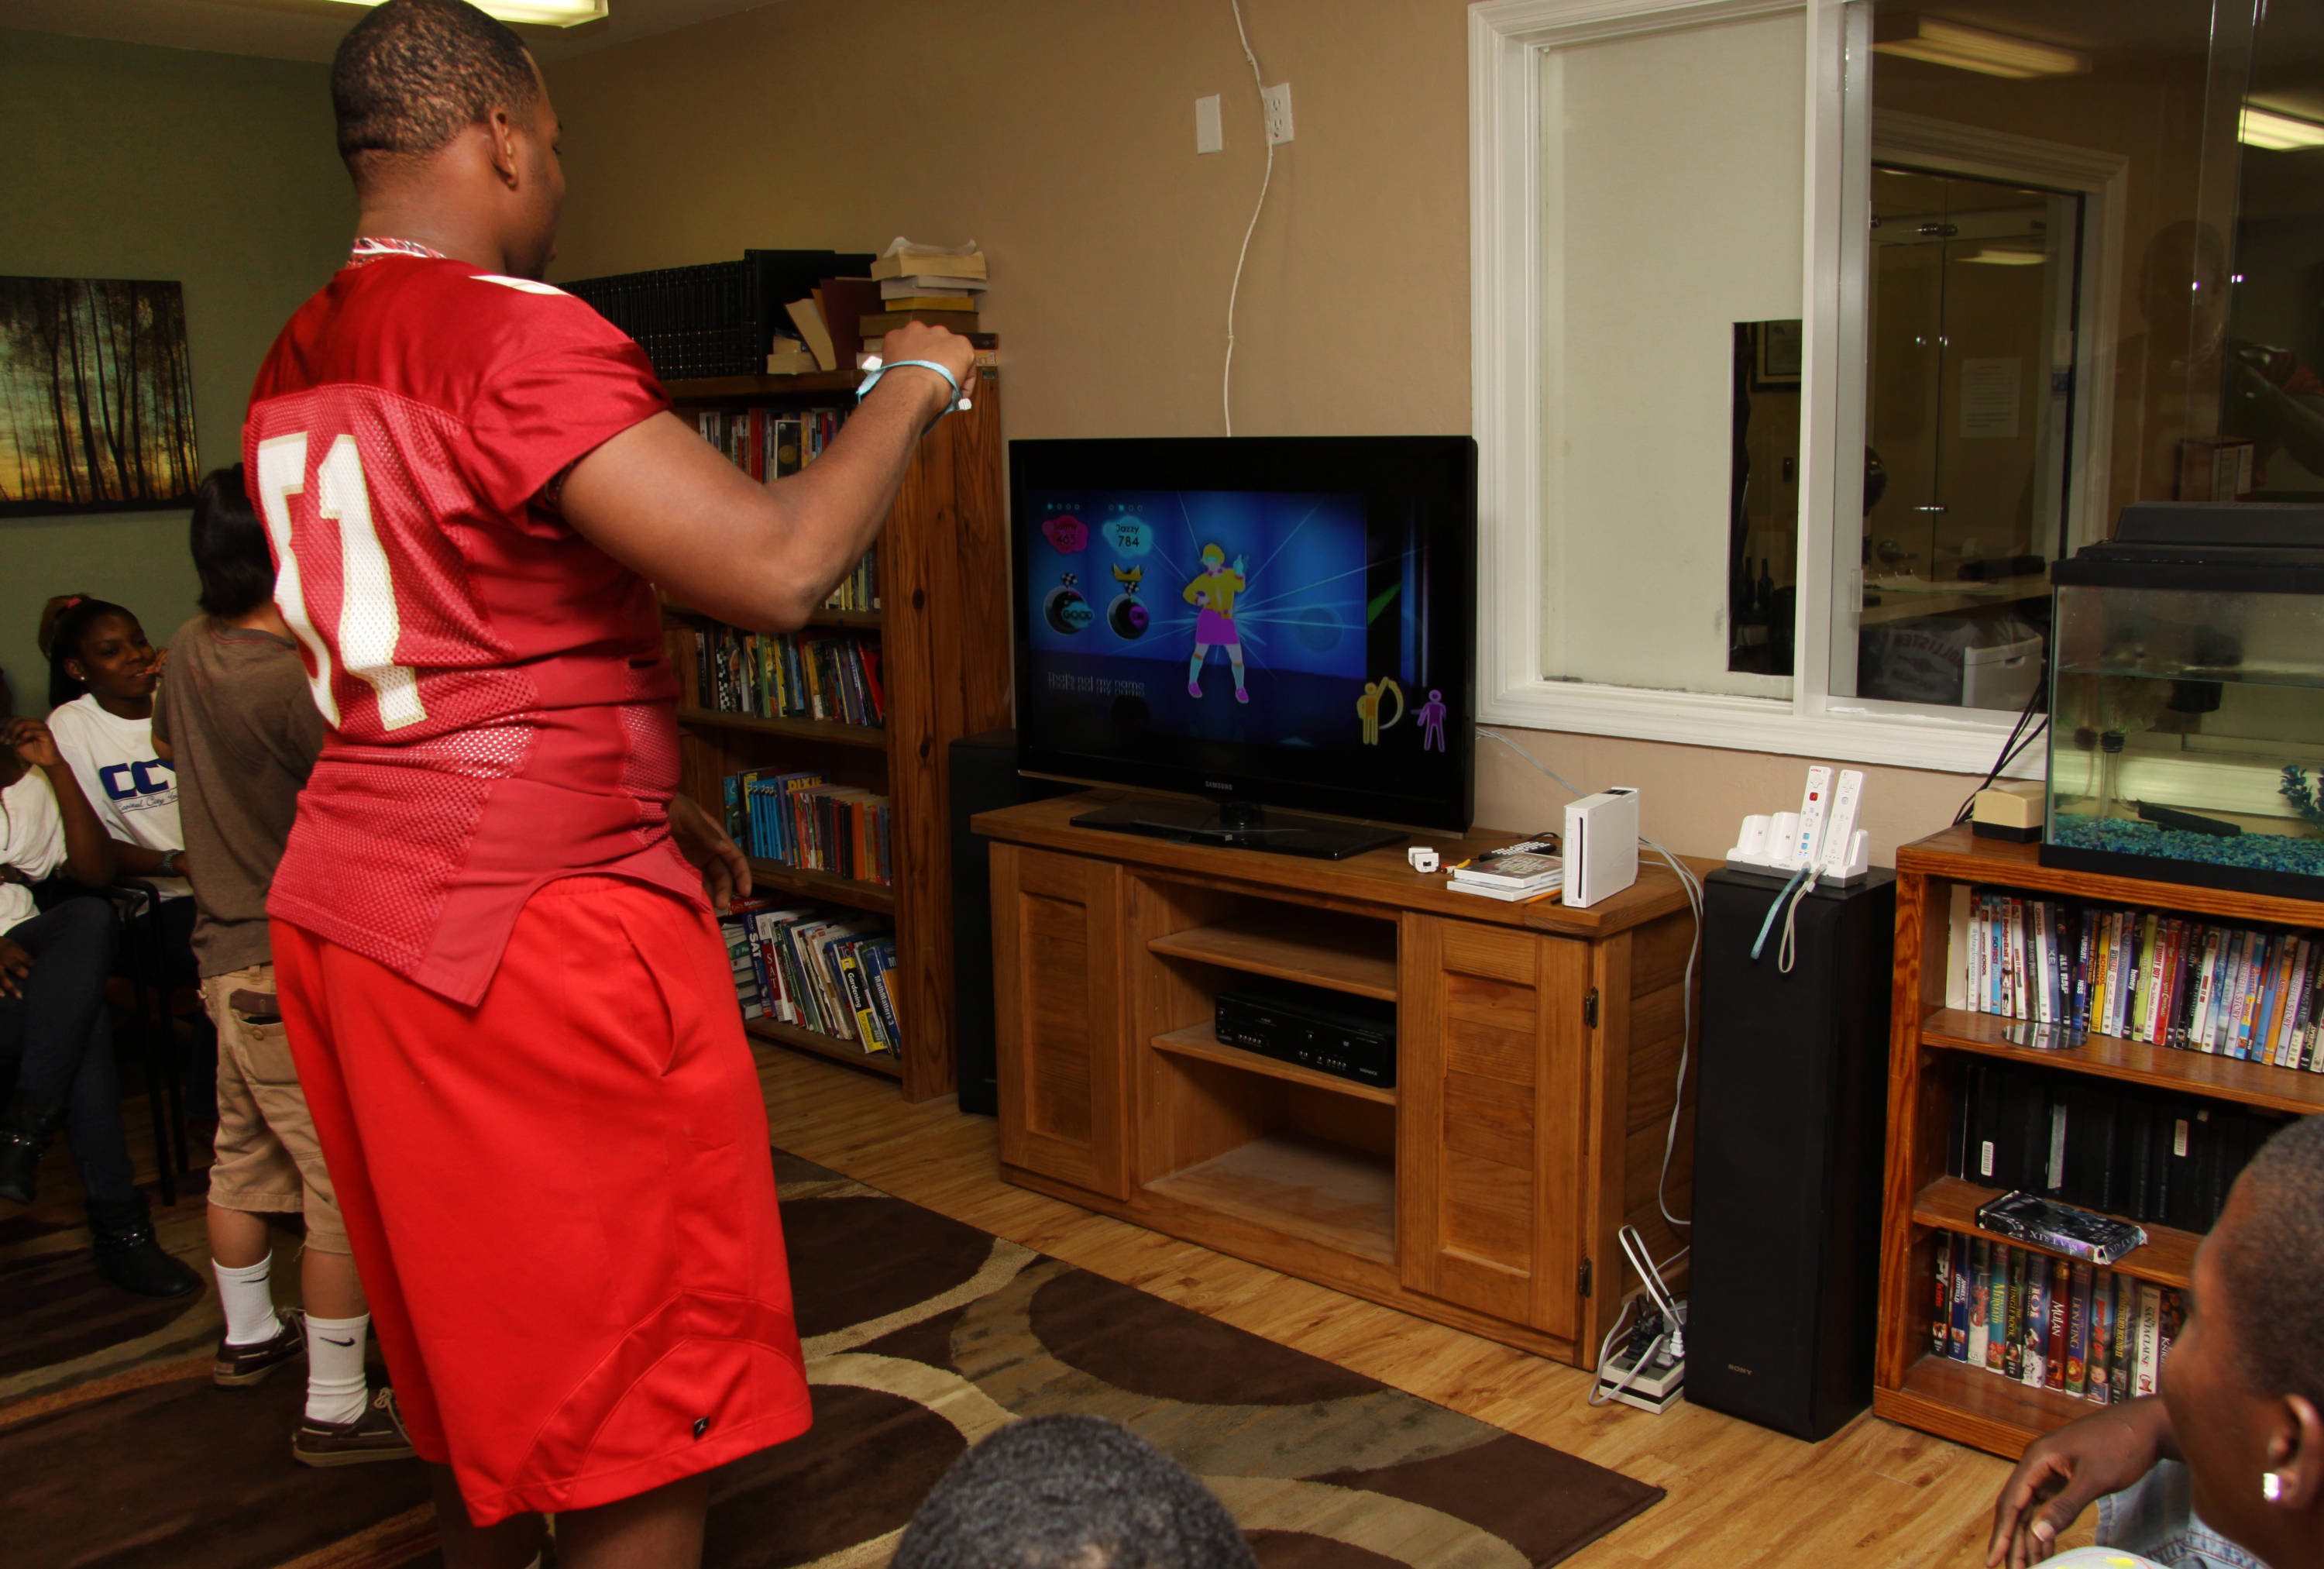 Bobby Hart plays Wii at Capital City Youth Services as part of FSU's Day of Doing